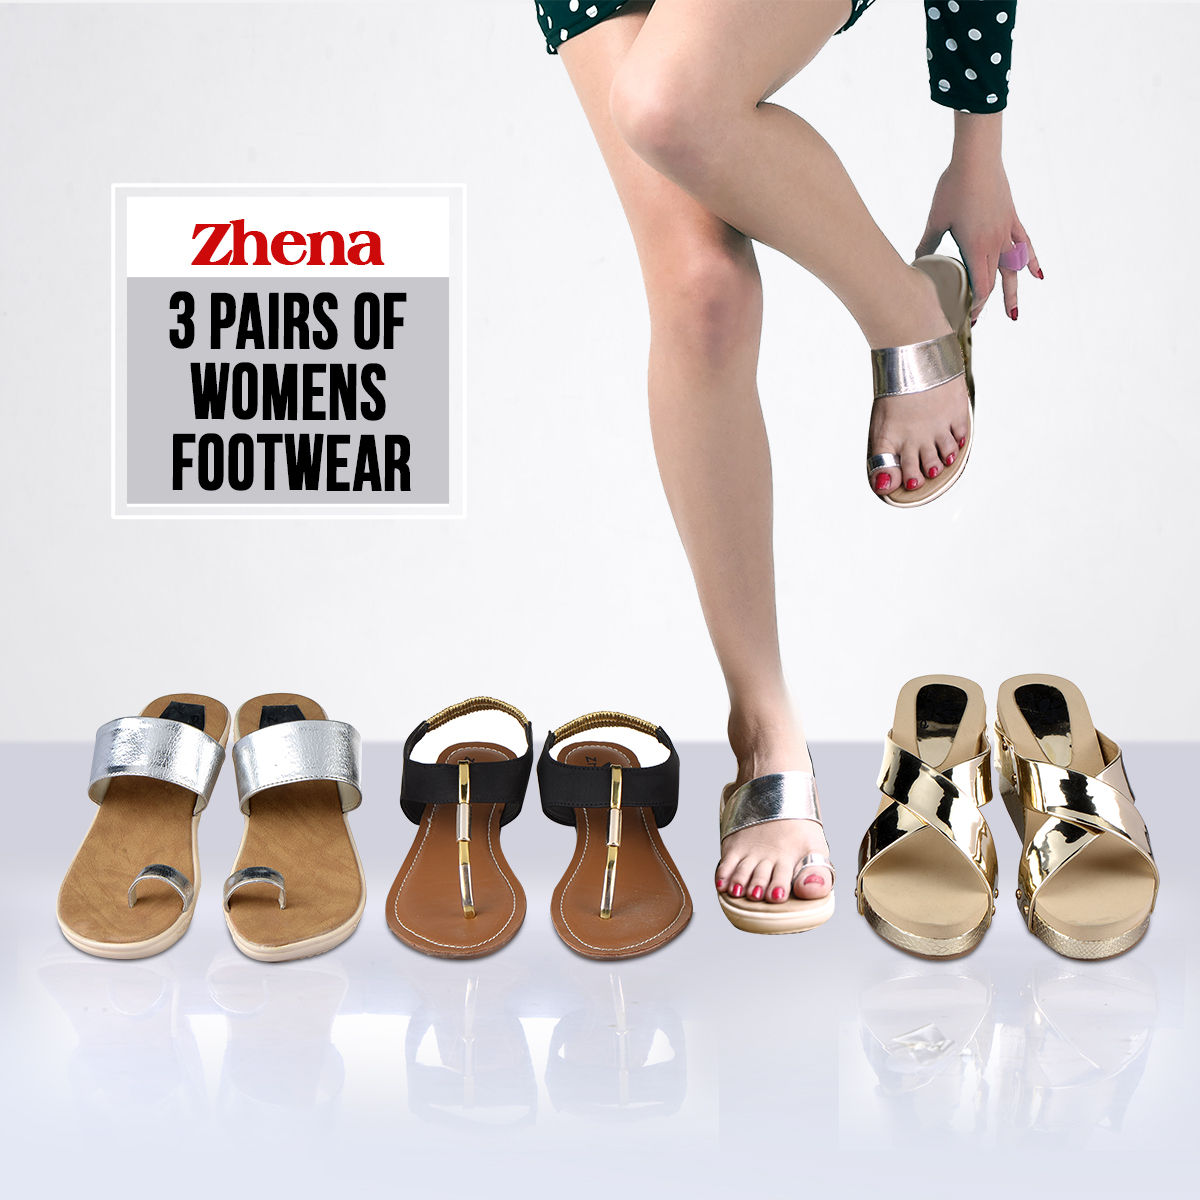 Buy Zhena 3 Pairs of Women s Footwear Online at Best Price in India on  Naaptol.com 8df20d2a7